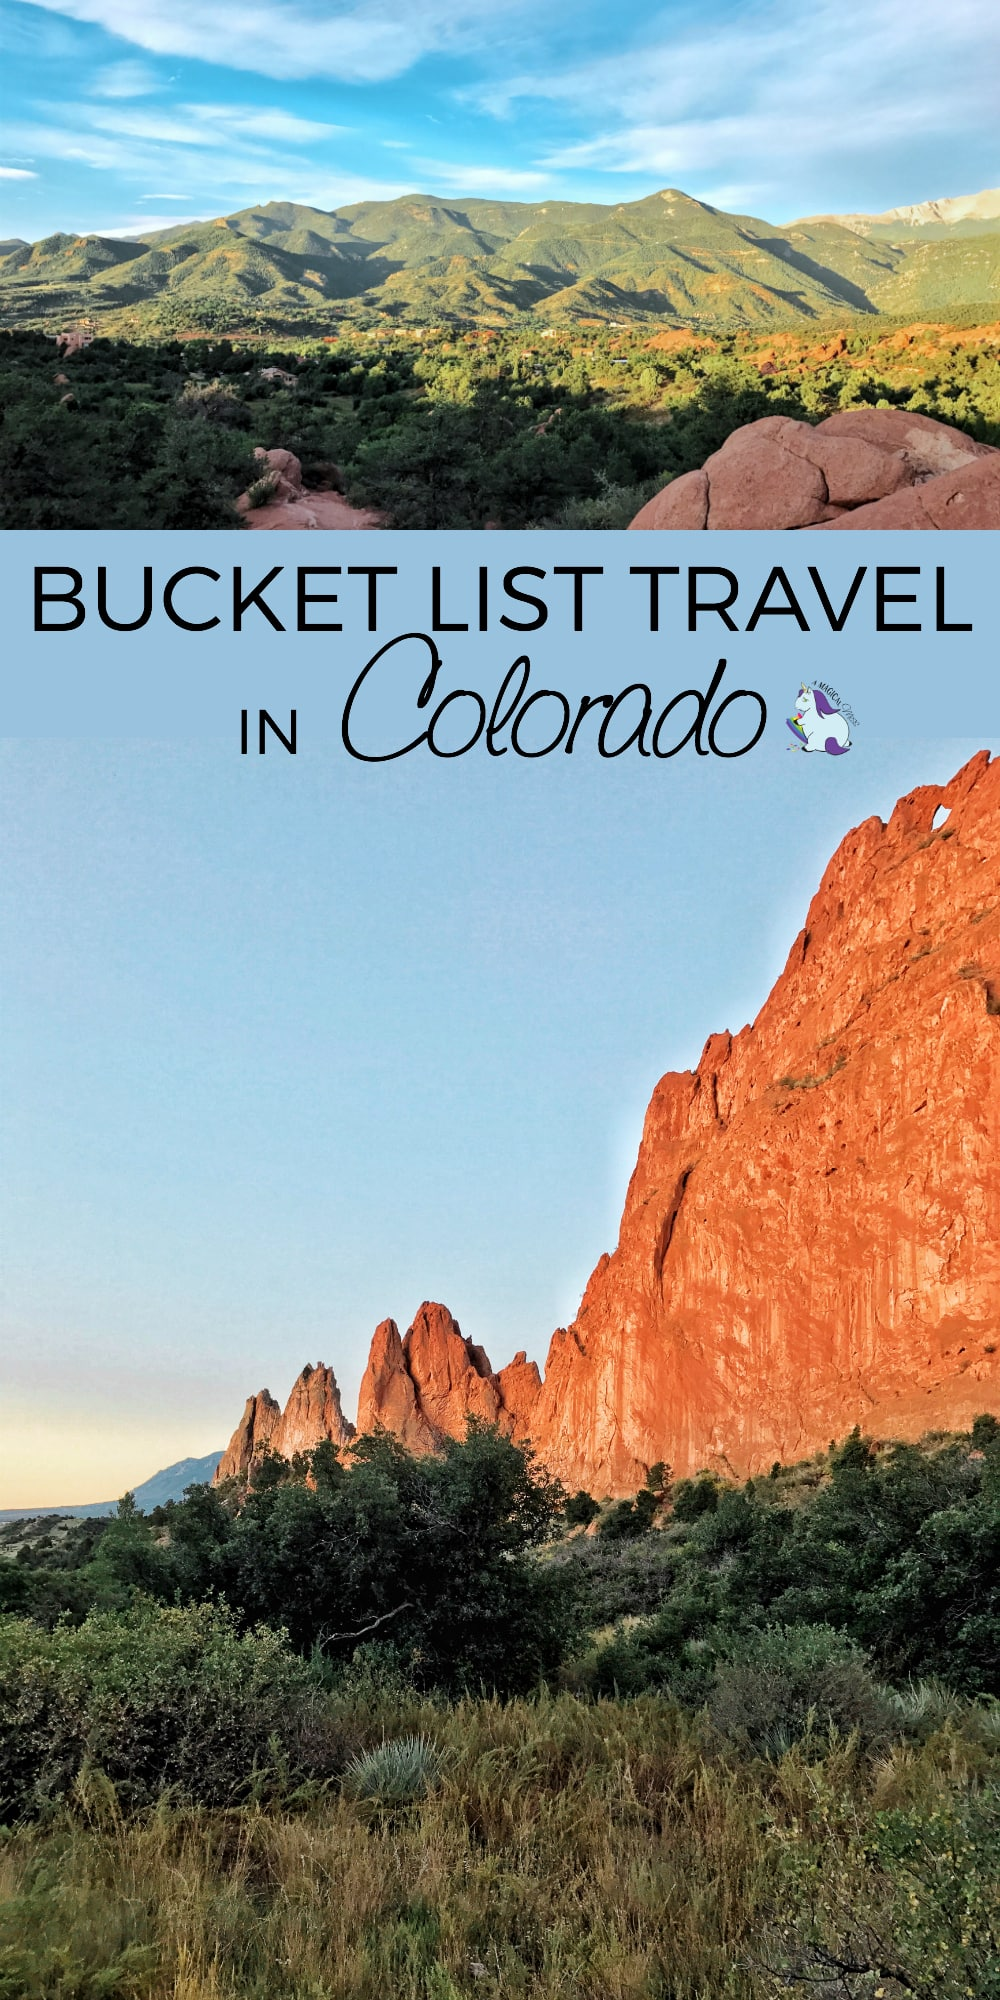 Colorado Vacations - Bucket List Travel Ideas in the Colorado Springs Region #travel #colorado #vacation